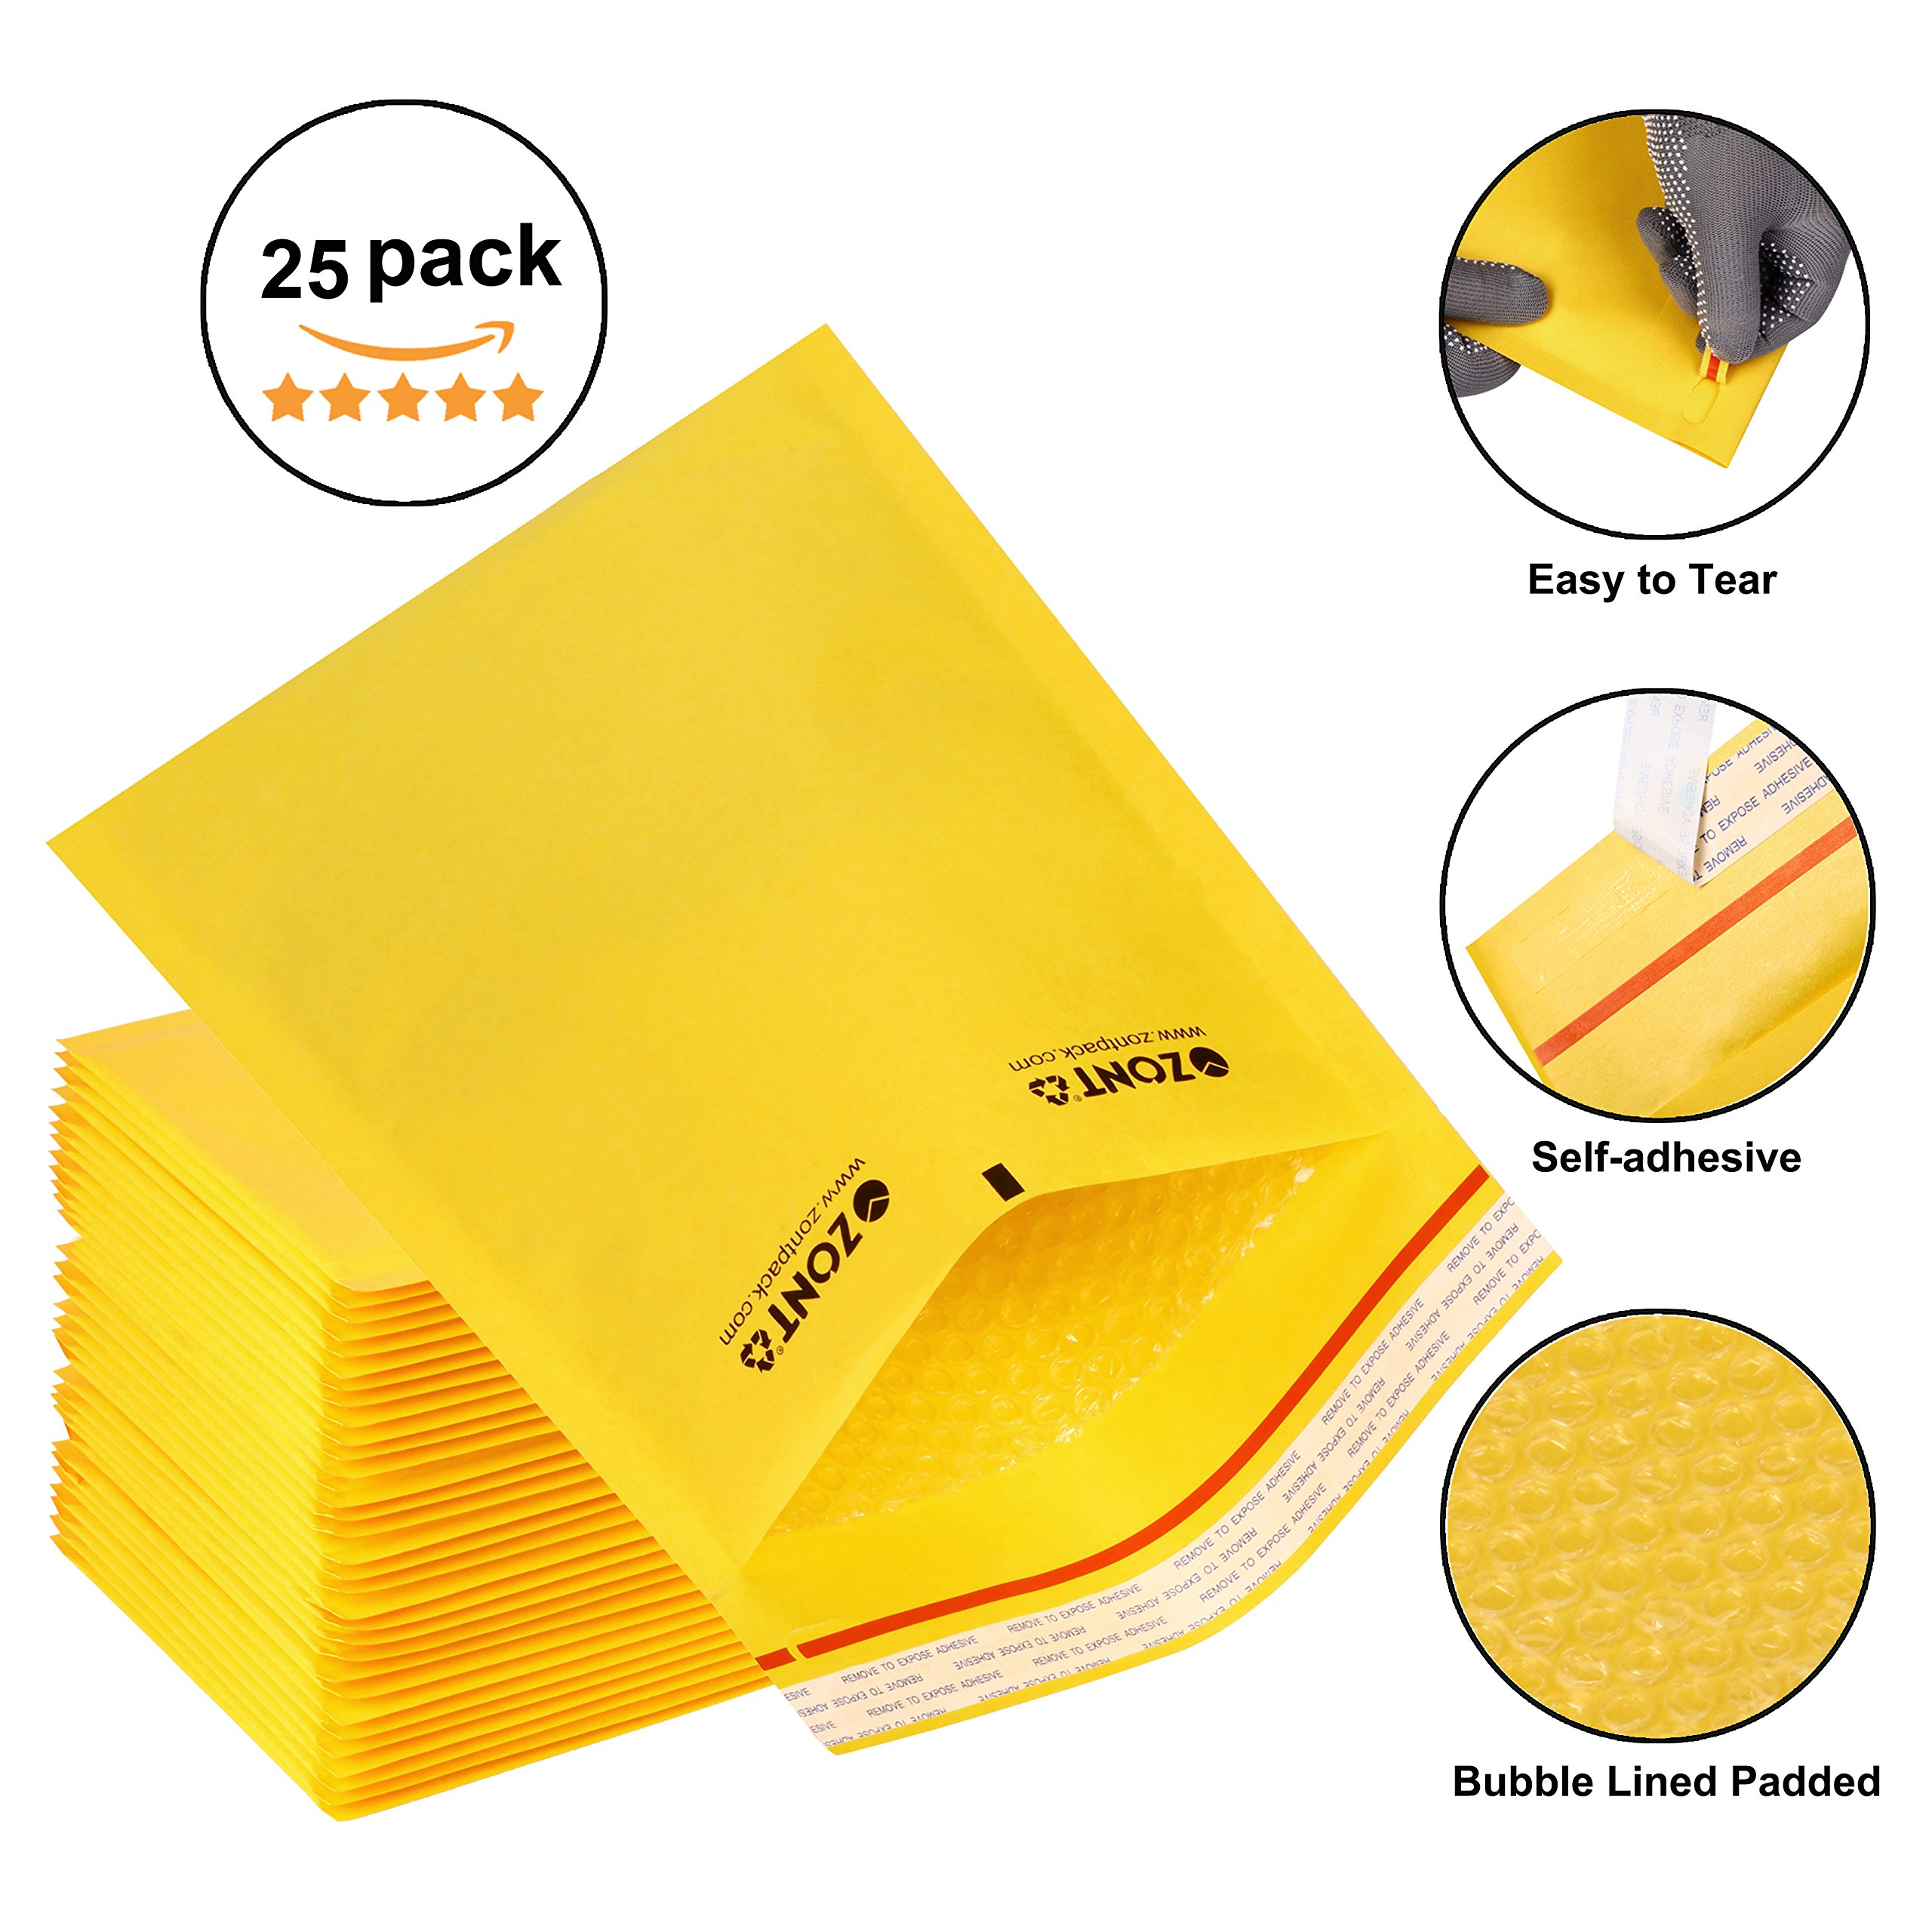 Zont Pack Golden Kraft Bubble Mailers, Self-adhesive Strip Envelope Mailers, Bubble Lined Padded Envelopes With Easy Tear Strip, Lightweight Mailing Envelopes, Box of 25 (8.5 x 11)